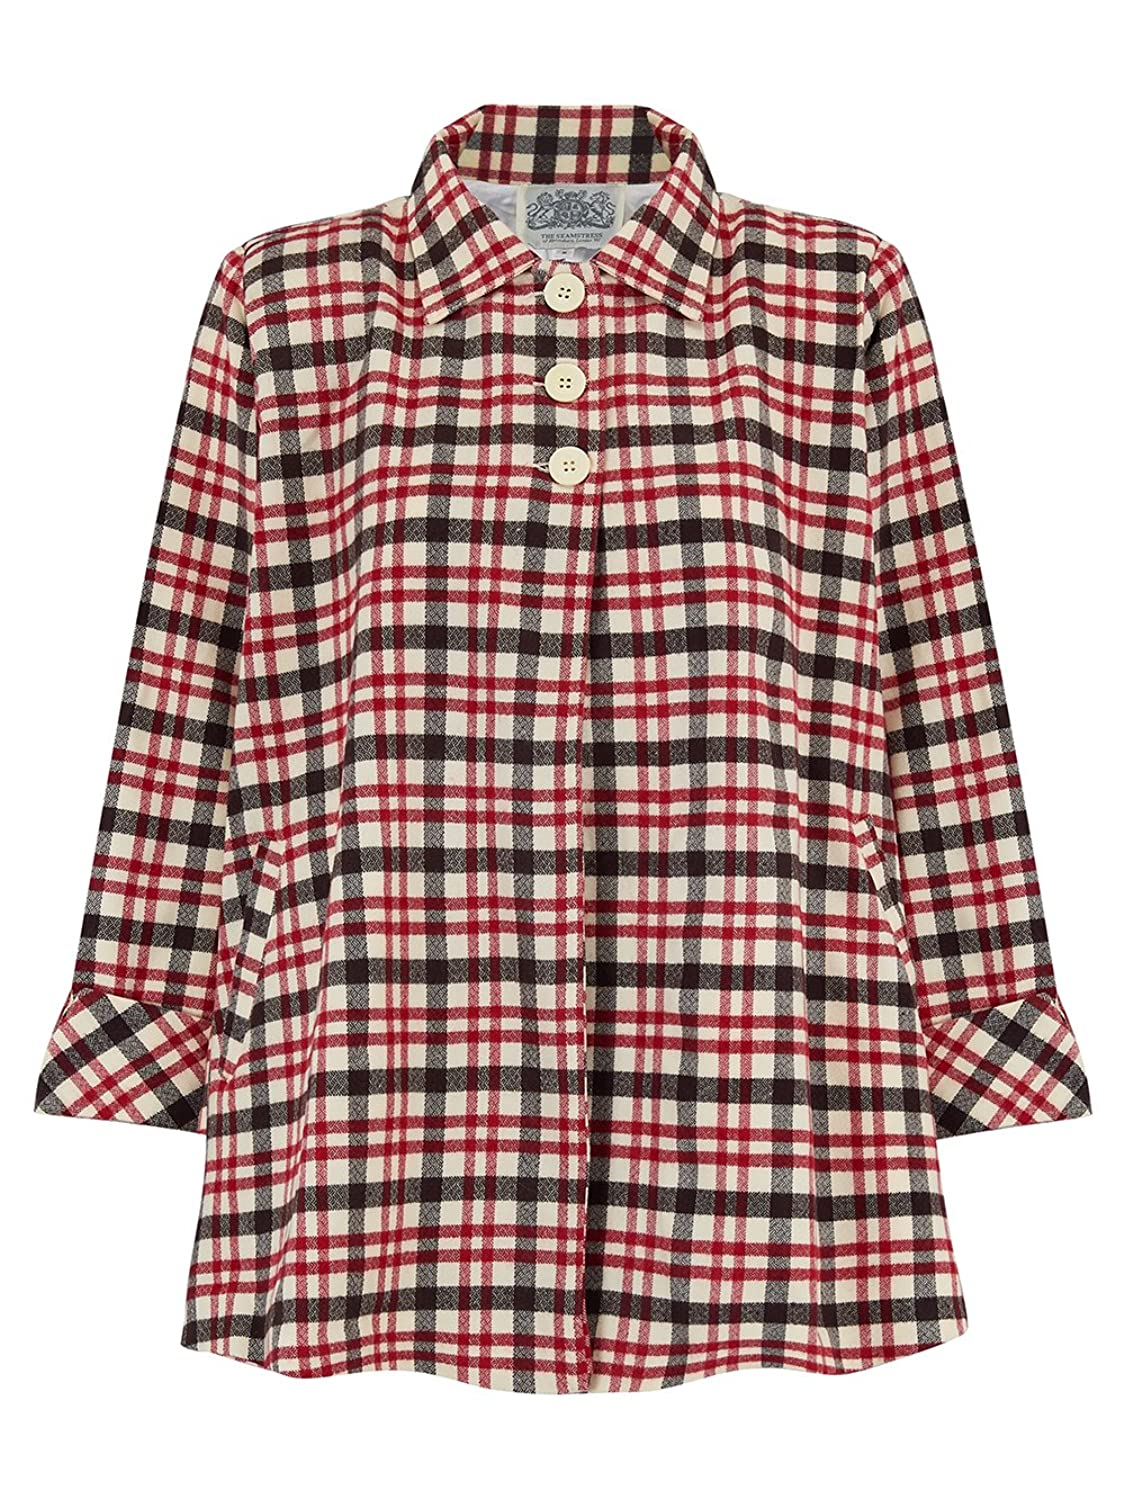 1940s Coats & Jackets Fashion History 1940s Inspired Vintage Swing Jacket in Red/White Check by The Seamstress of Bloomsbury �125.00 AT vintagedancer.com